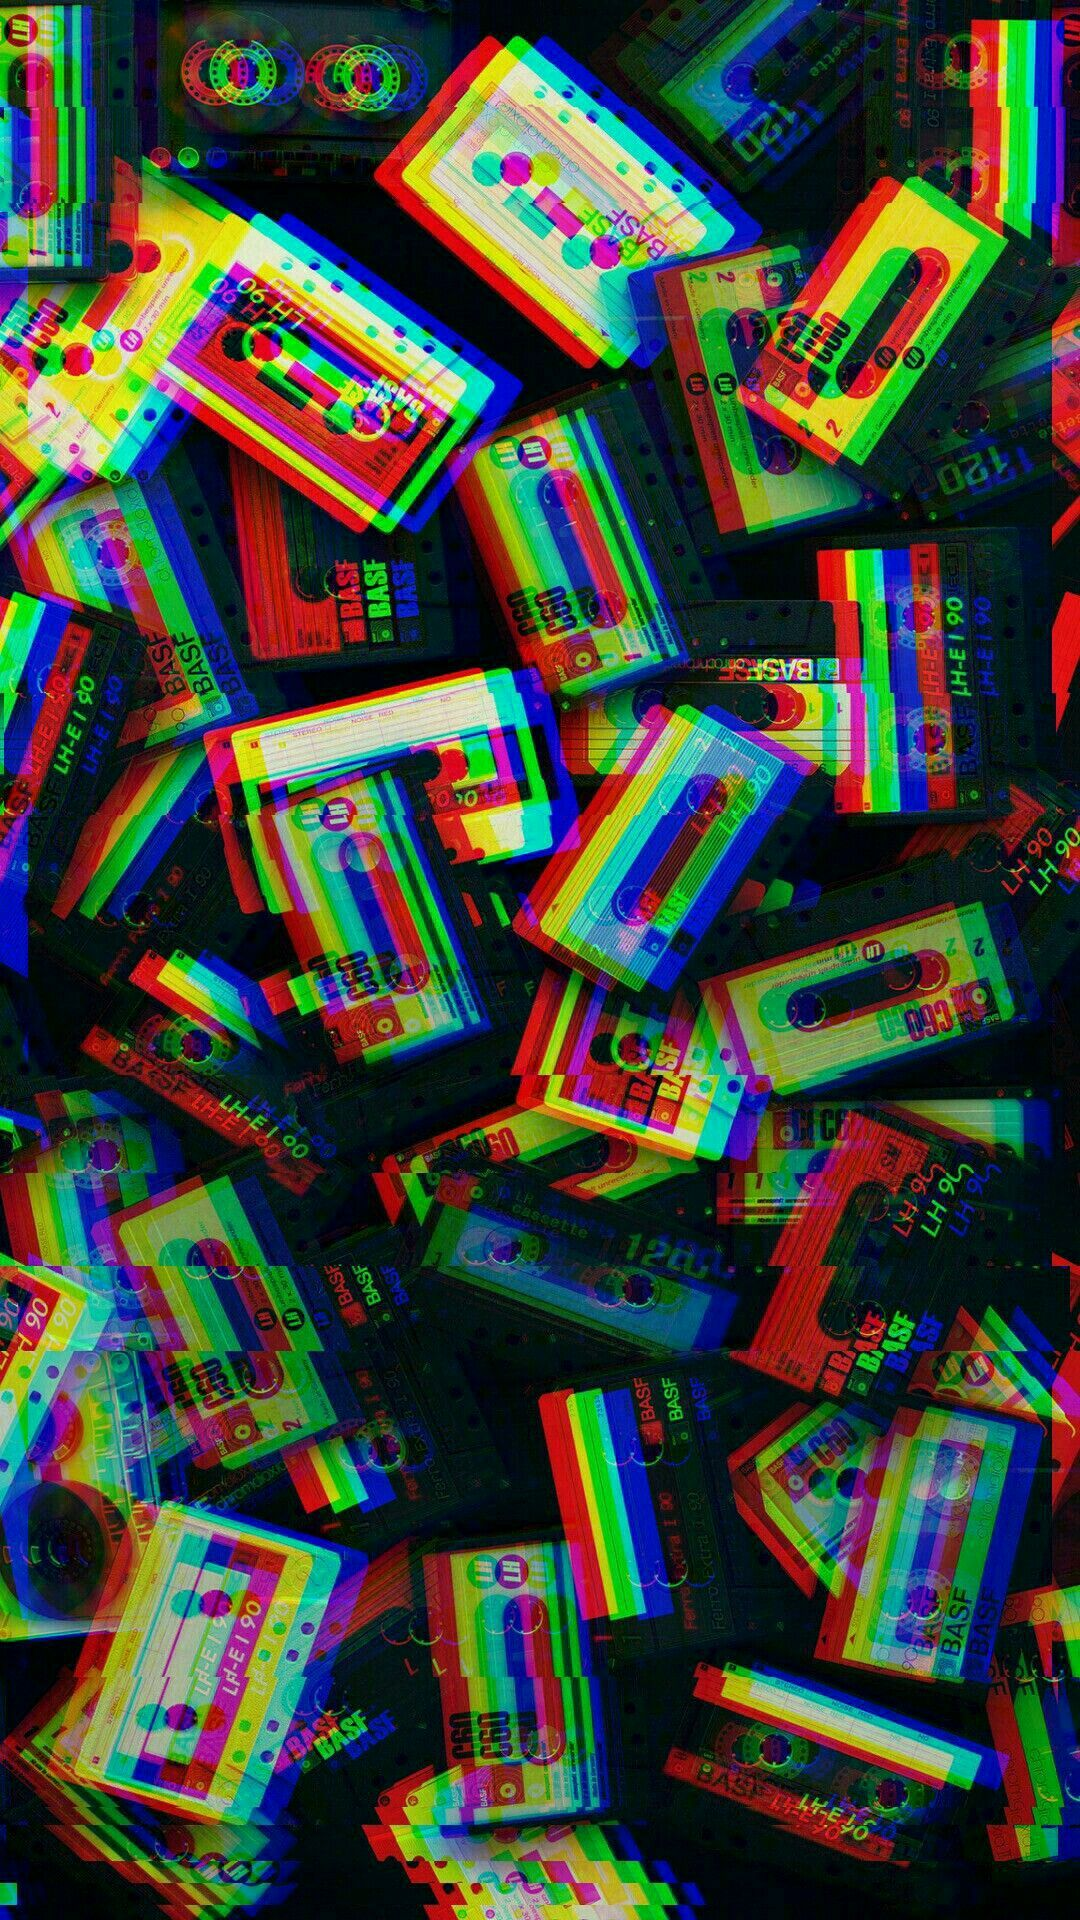 Vintage Glitch Cassette Tape Wallpaper Glitch Wallpaper Aesthetic Iphone Wallpaper Trippy Wallpaper